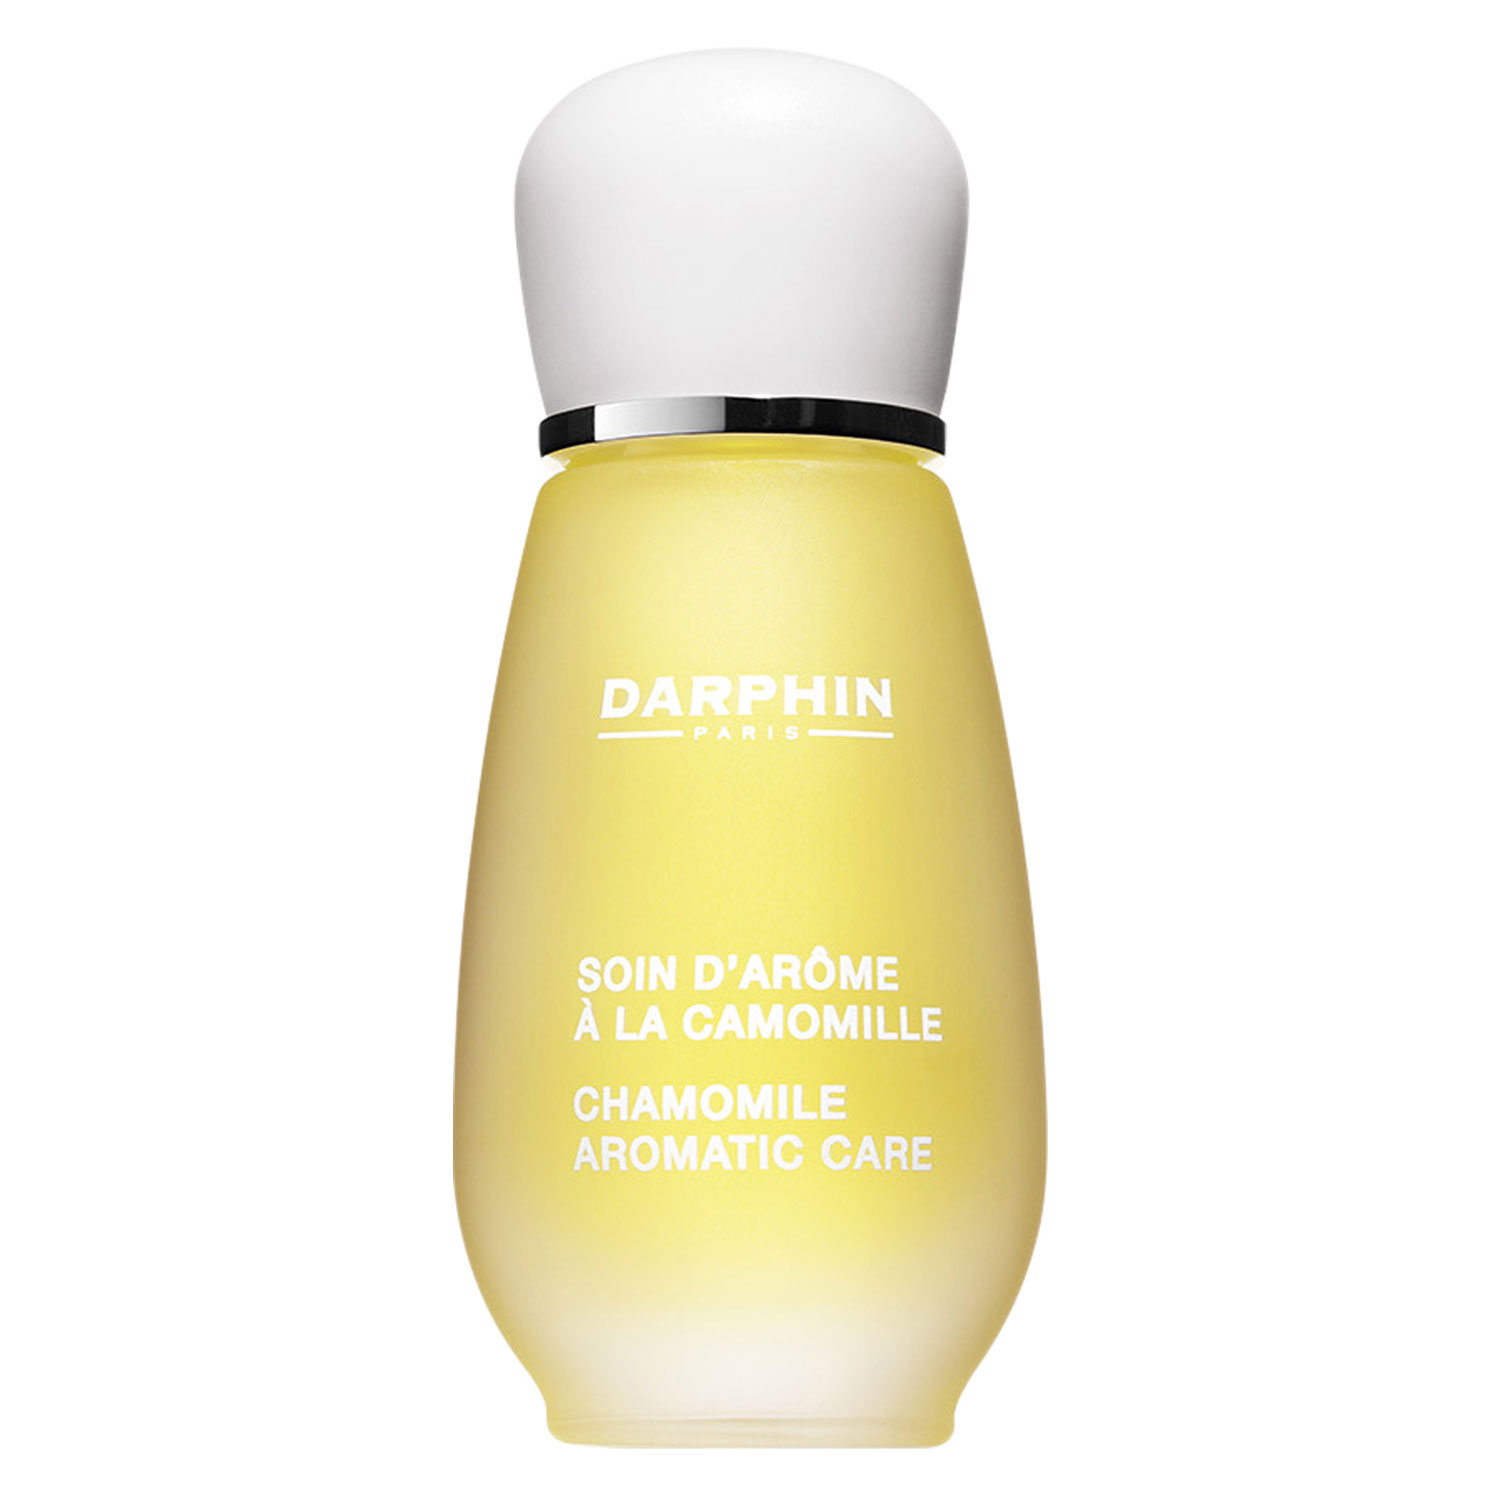 ESSENTIAL OIL ELIXIR - Chamomile Aromatic Care